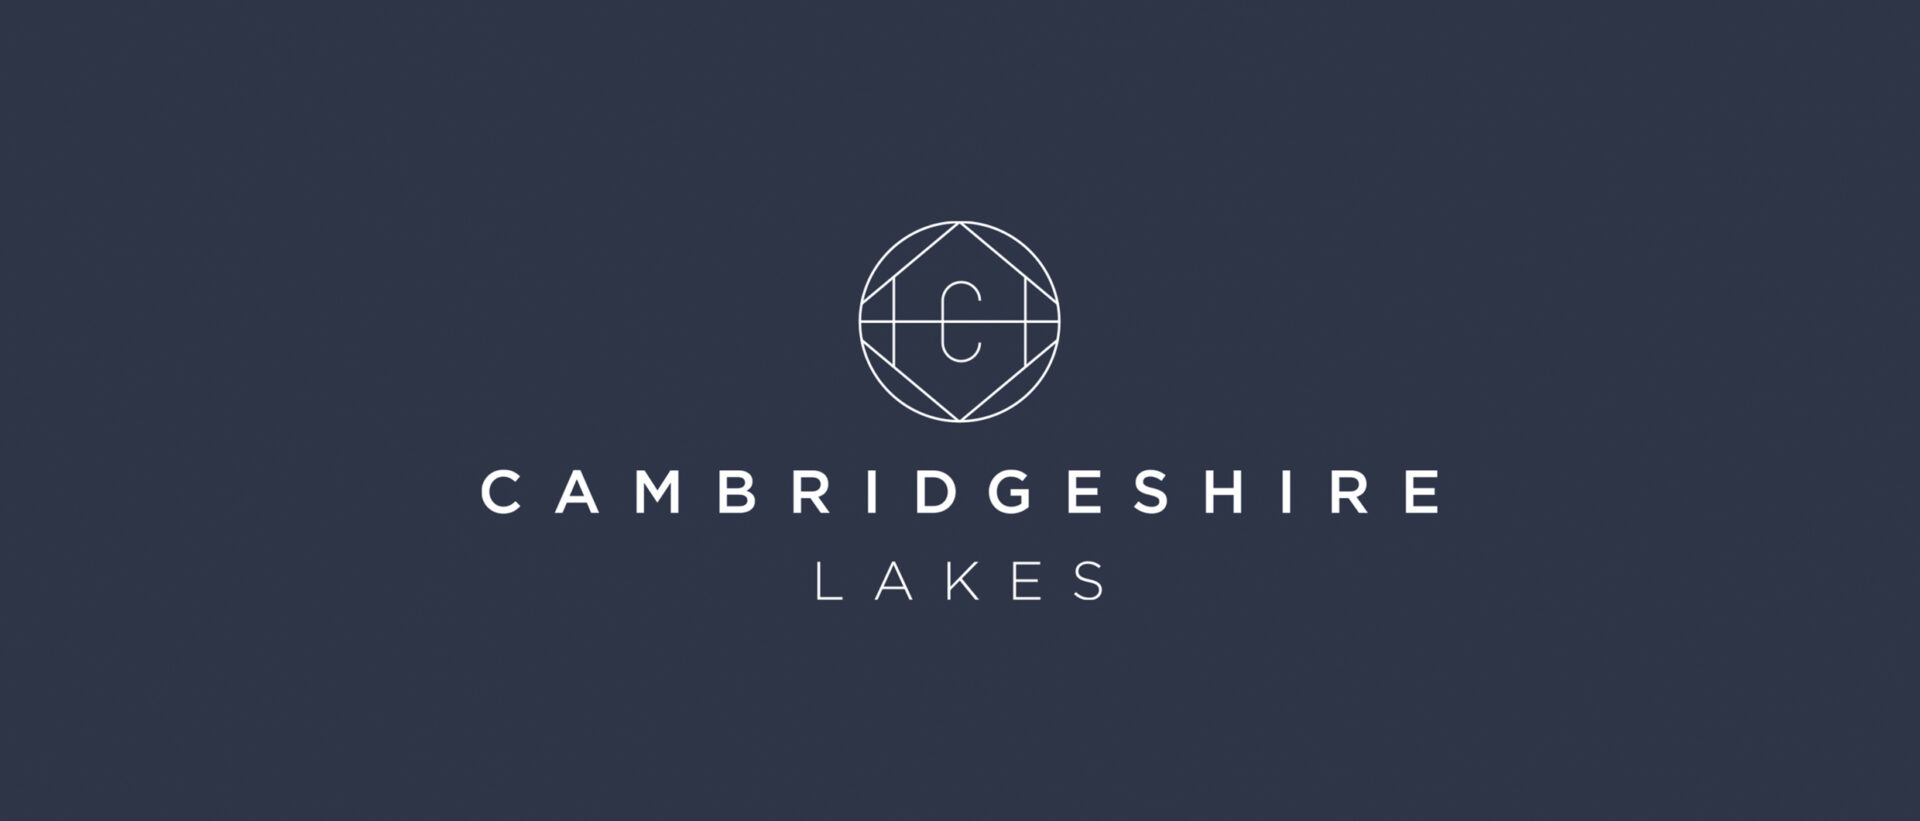 Cambridgeshire Lakes logo design